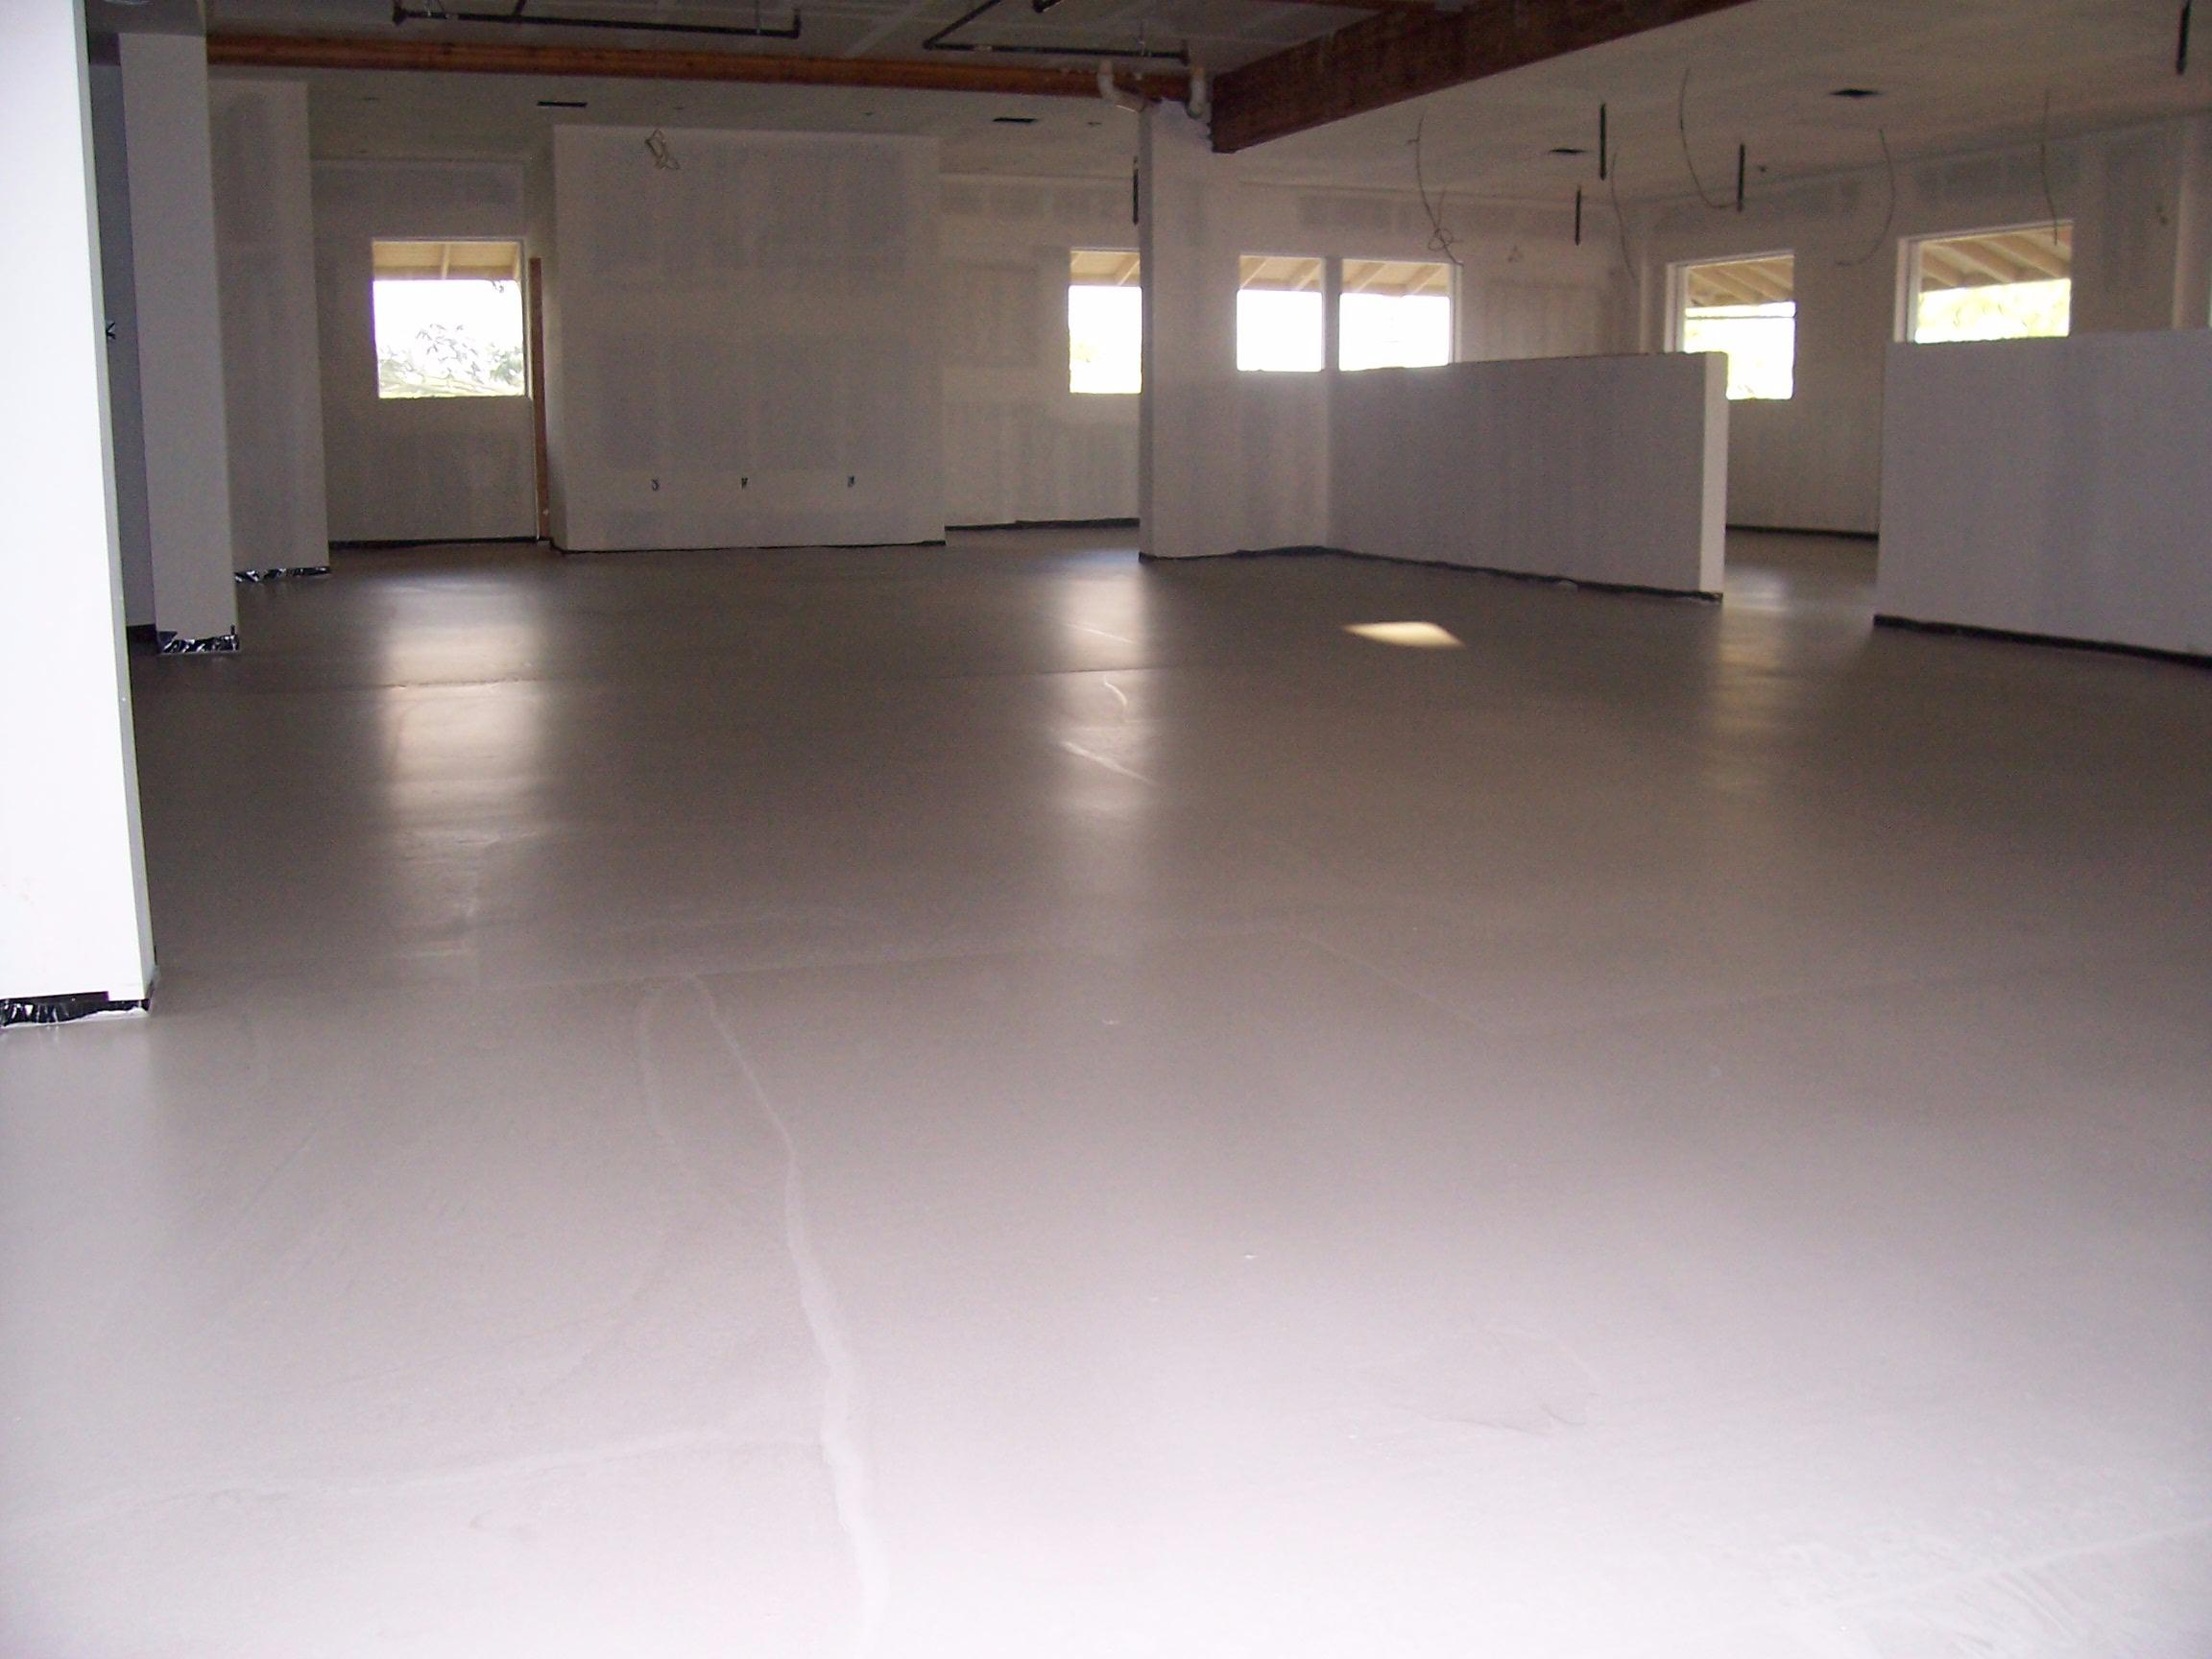 Gypsum Concrete Flooring : Western gypsum floors concrete contractor woods cross